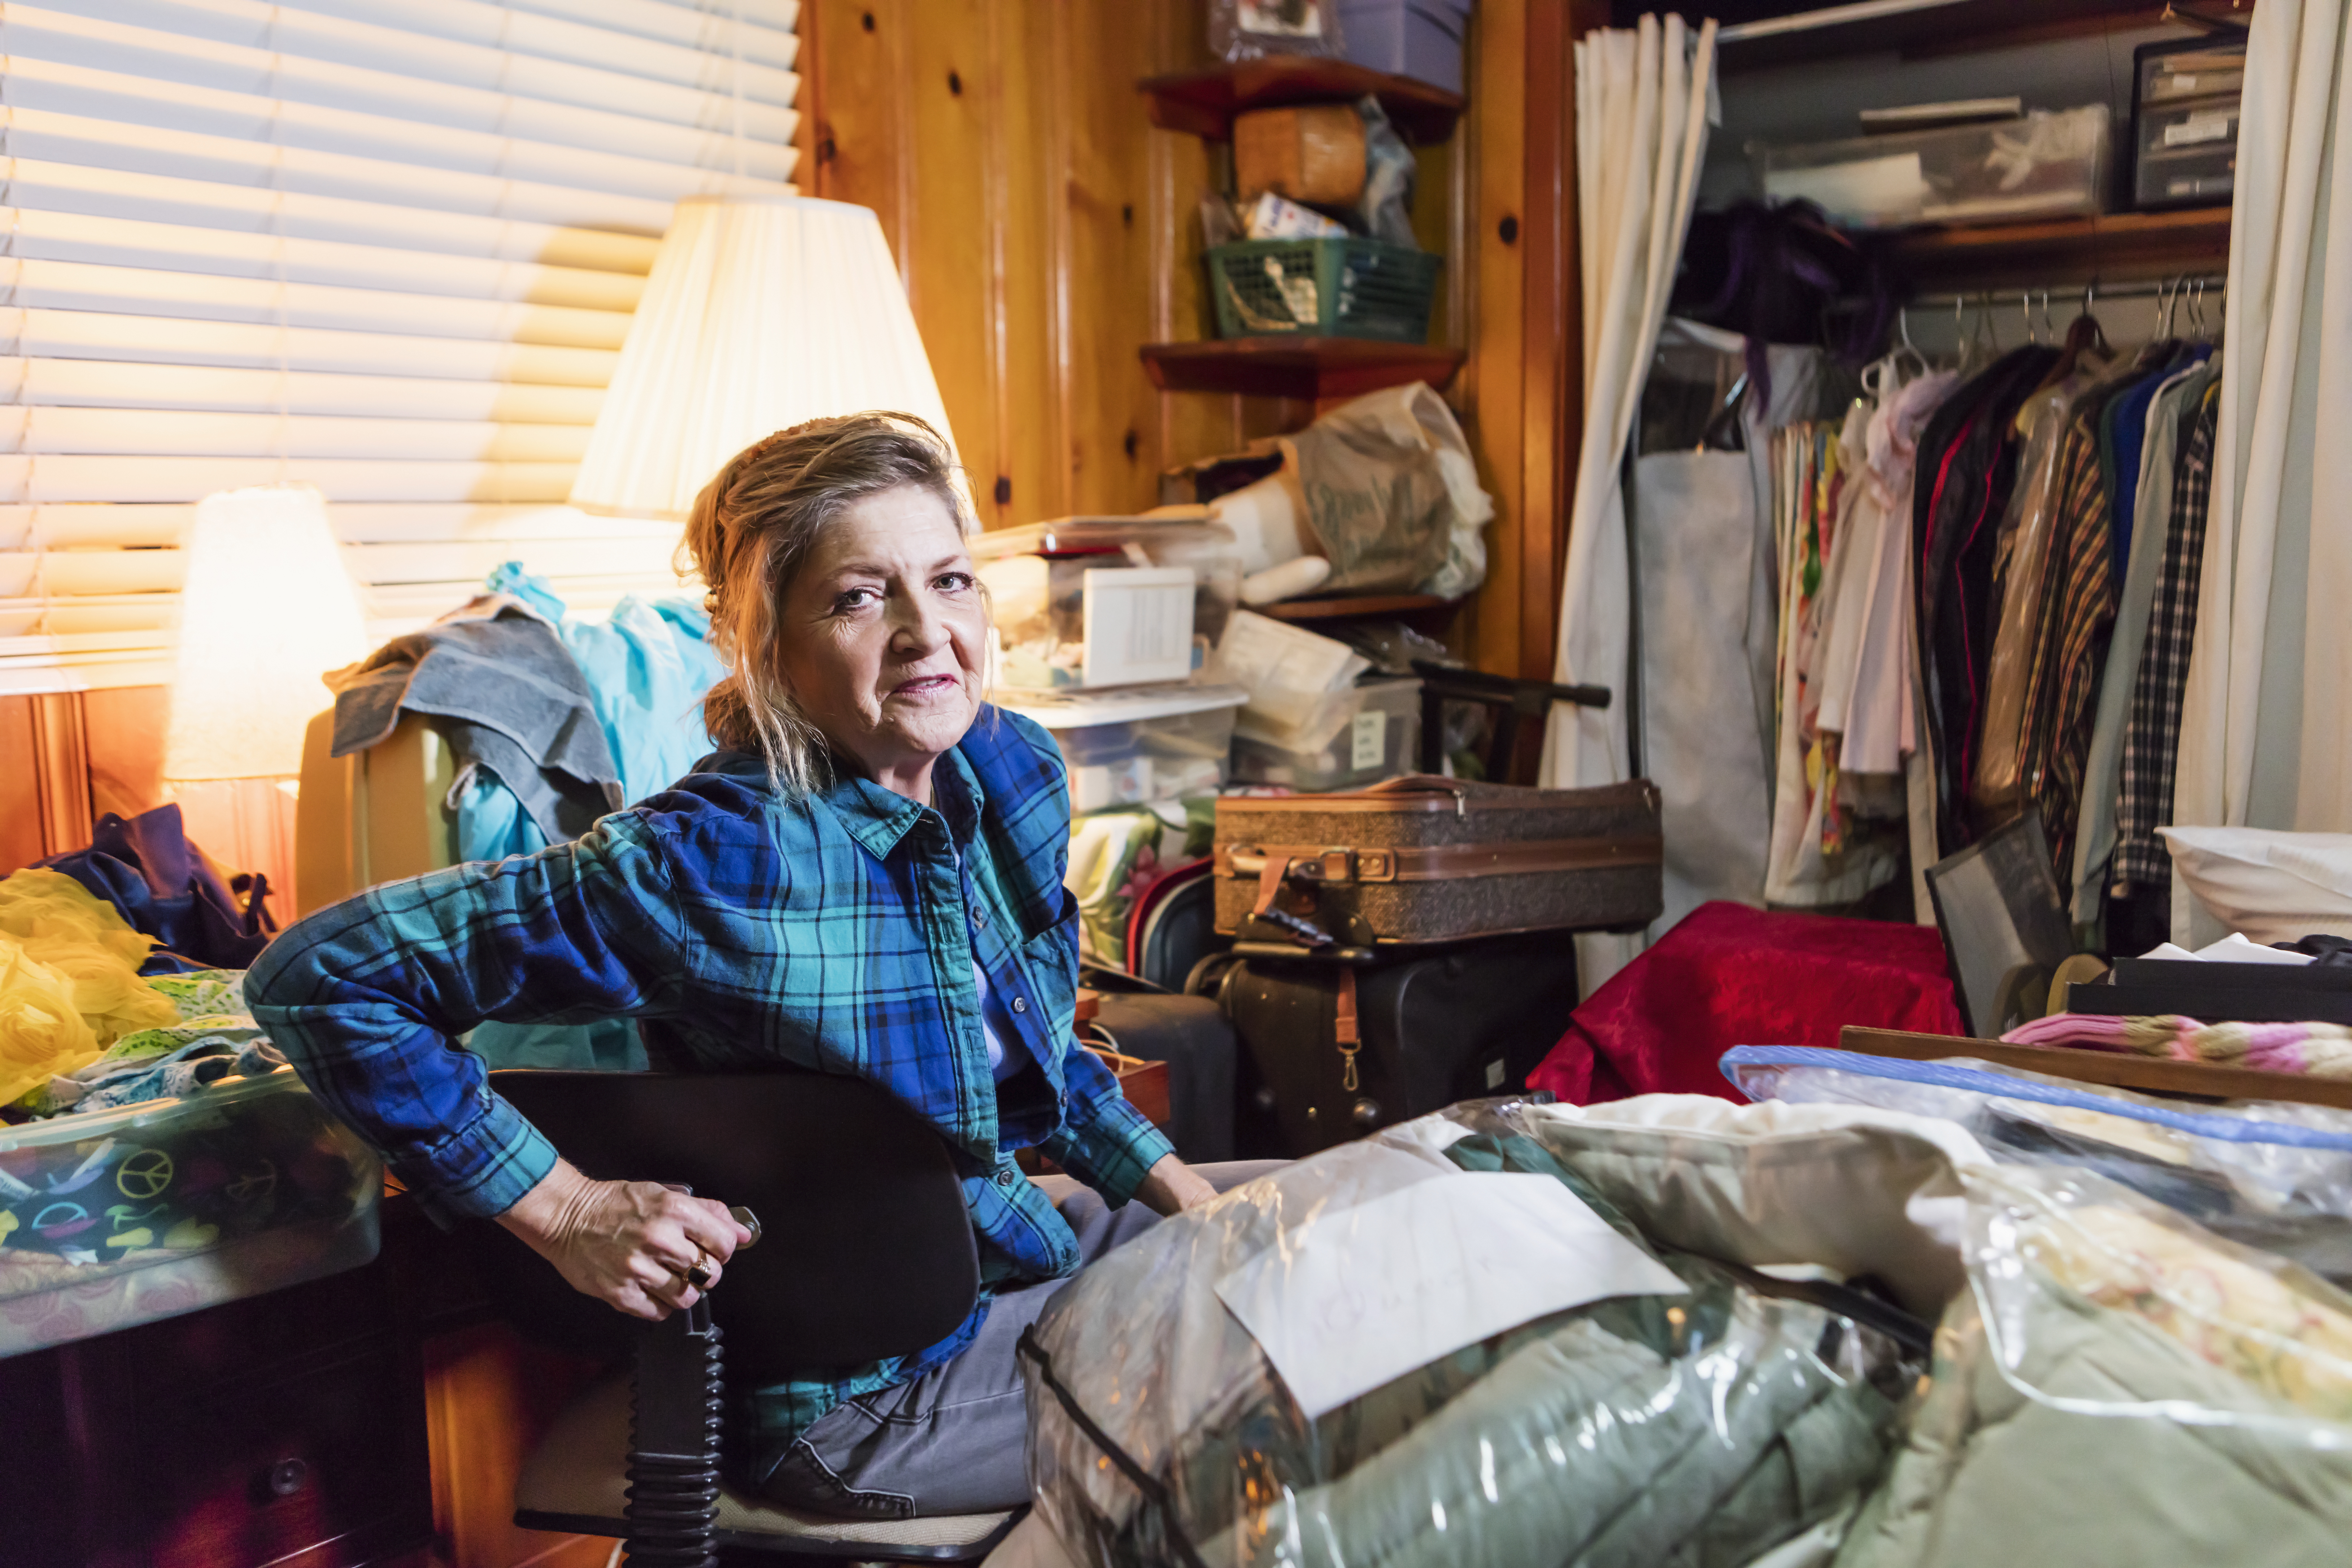 A senior woman in her 60s at home, sitting in a messy, cluttered room, looking at the camera with a serious expression.